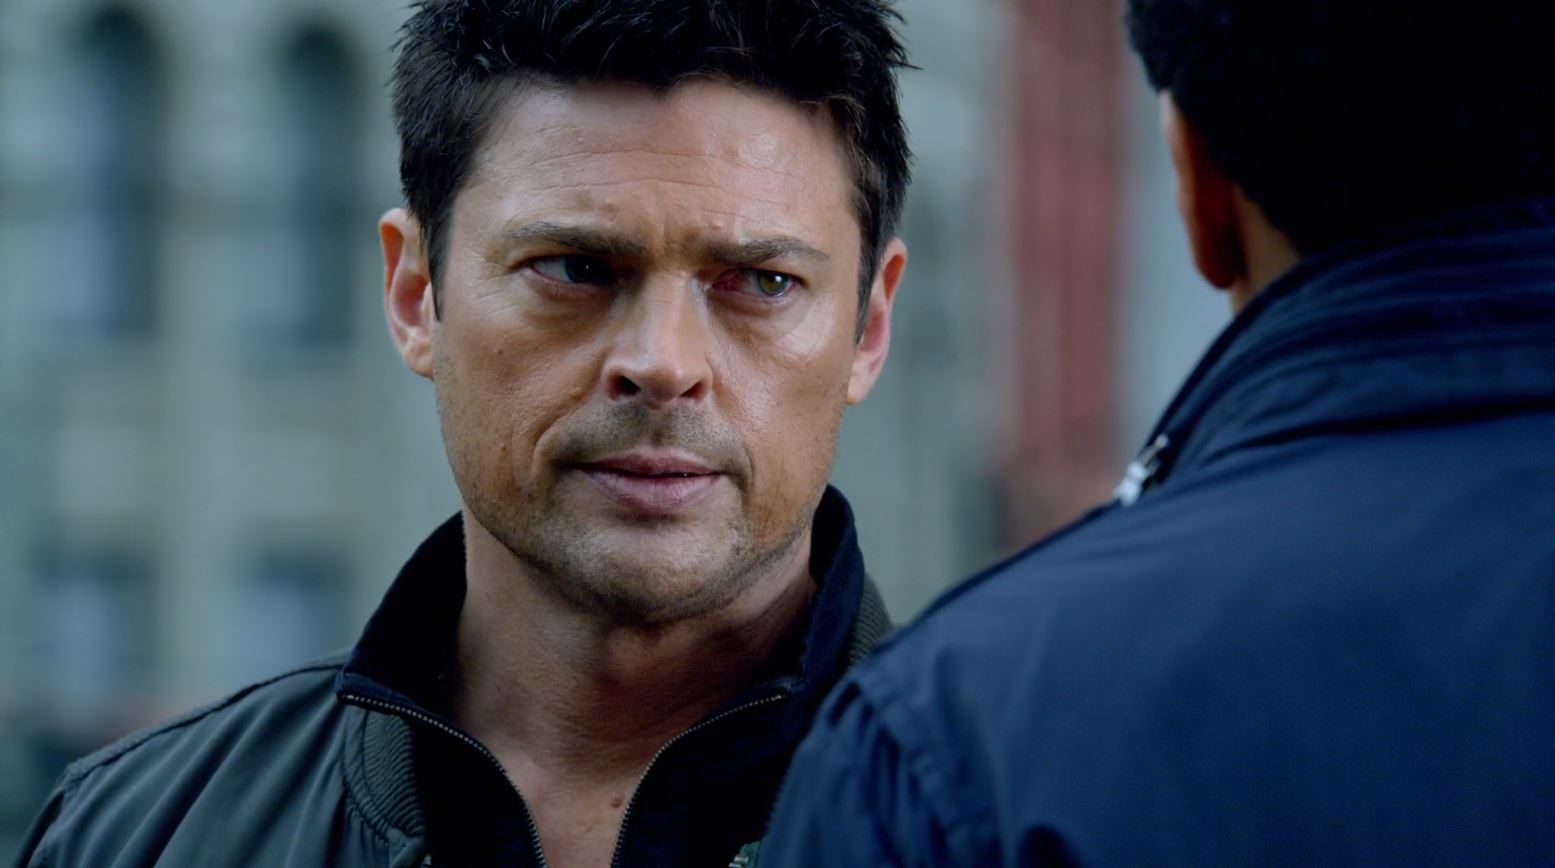 Displaying 20 gt  Images For - Karl Urban Almost Human Gun   Karl Urban Almost Human Gun